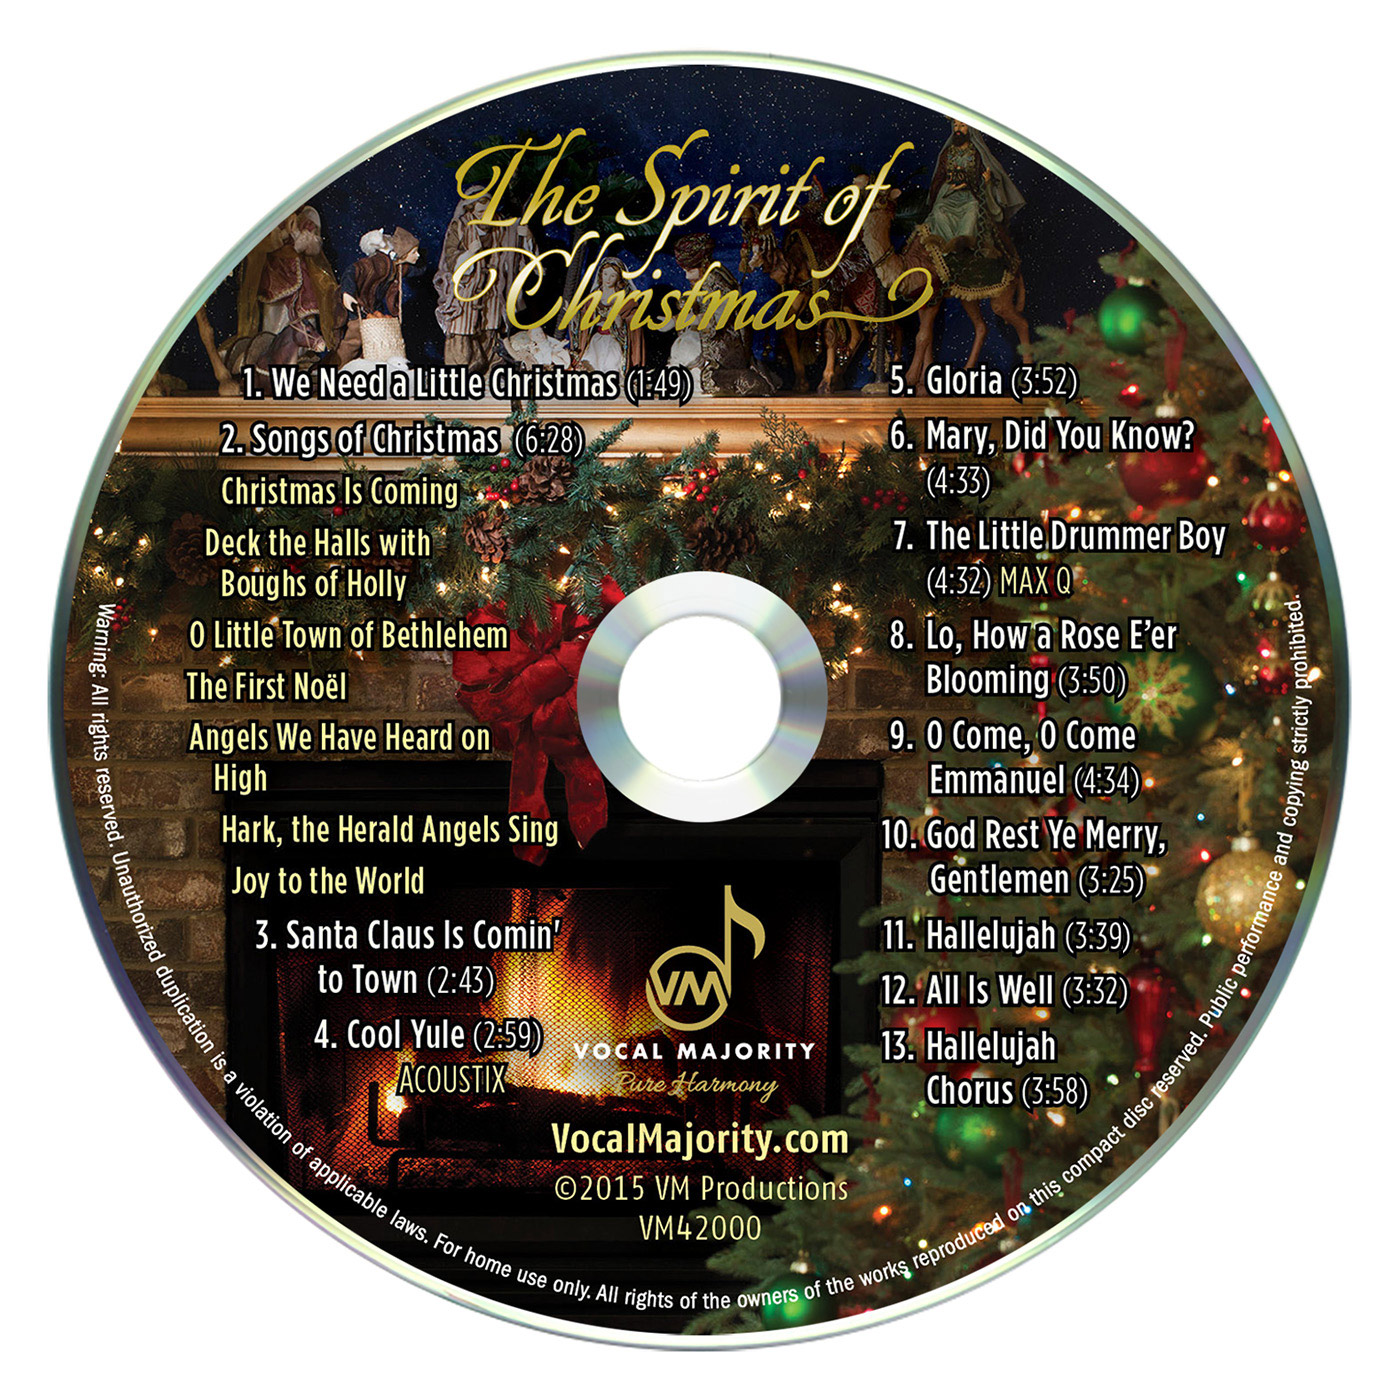 Spirit-of-Christmas-Frnt-Cvr-REV-171130-1400-sq.jpg